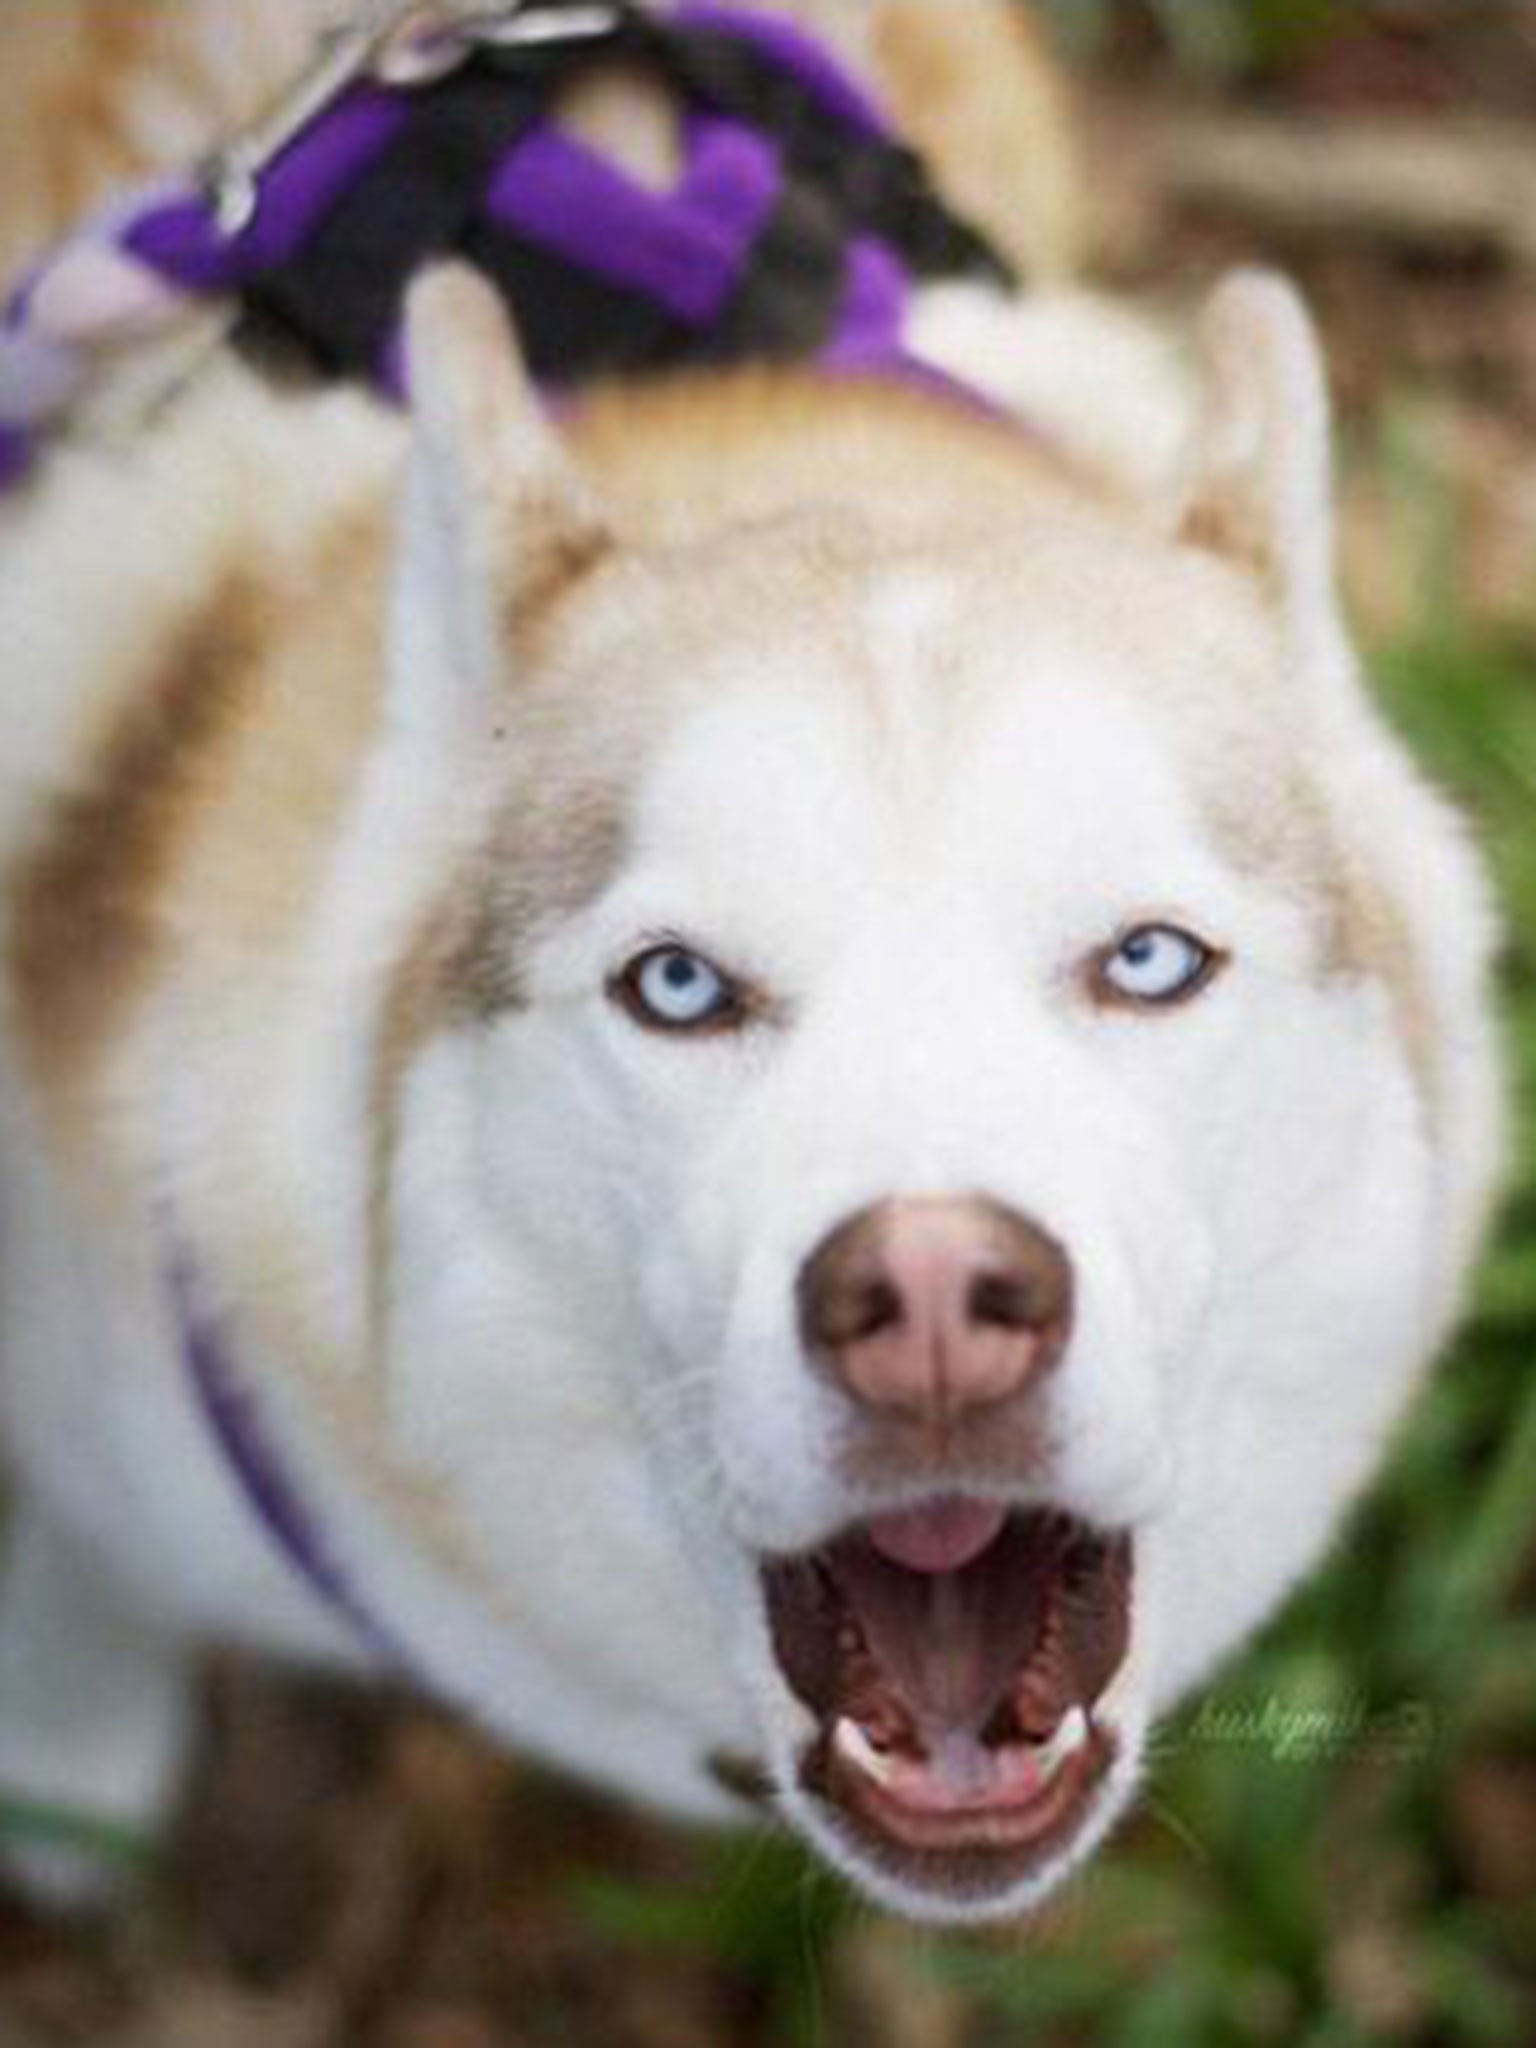 Dogs can understand human speech, scientists discover | The